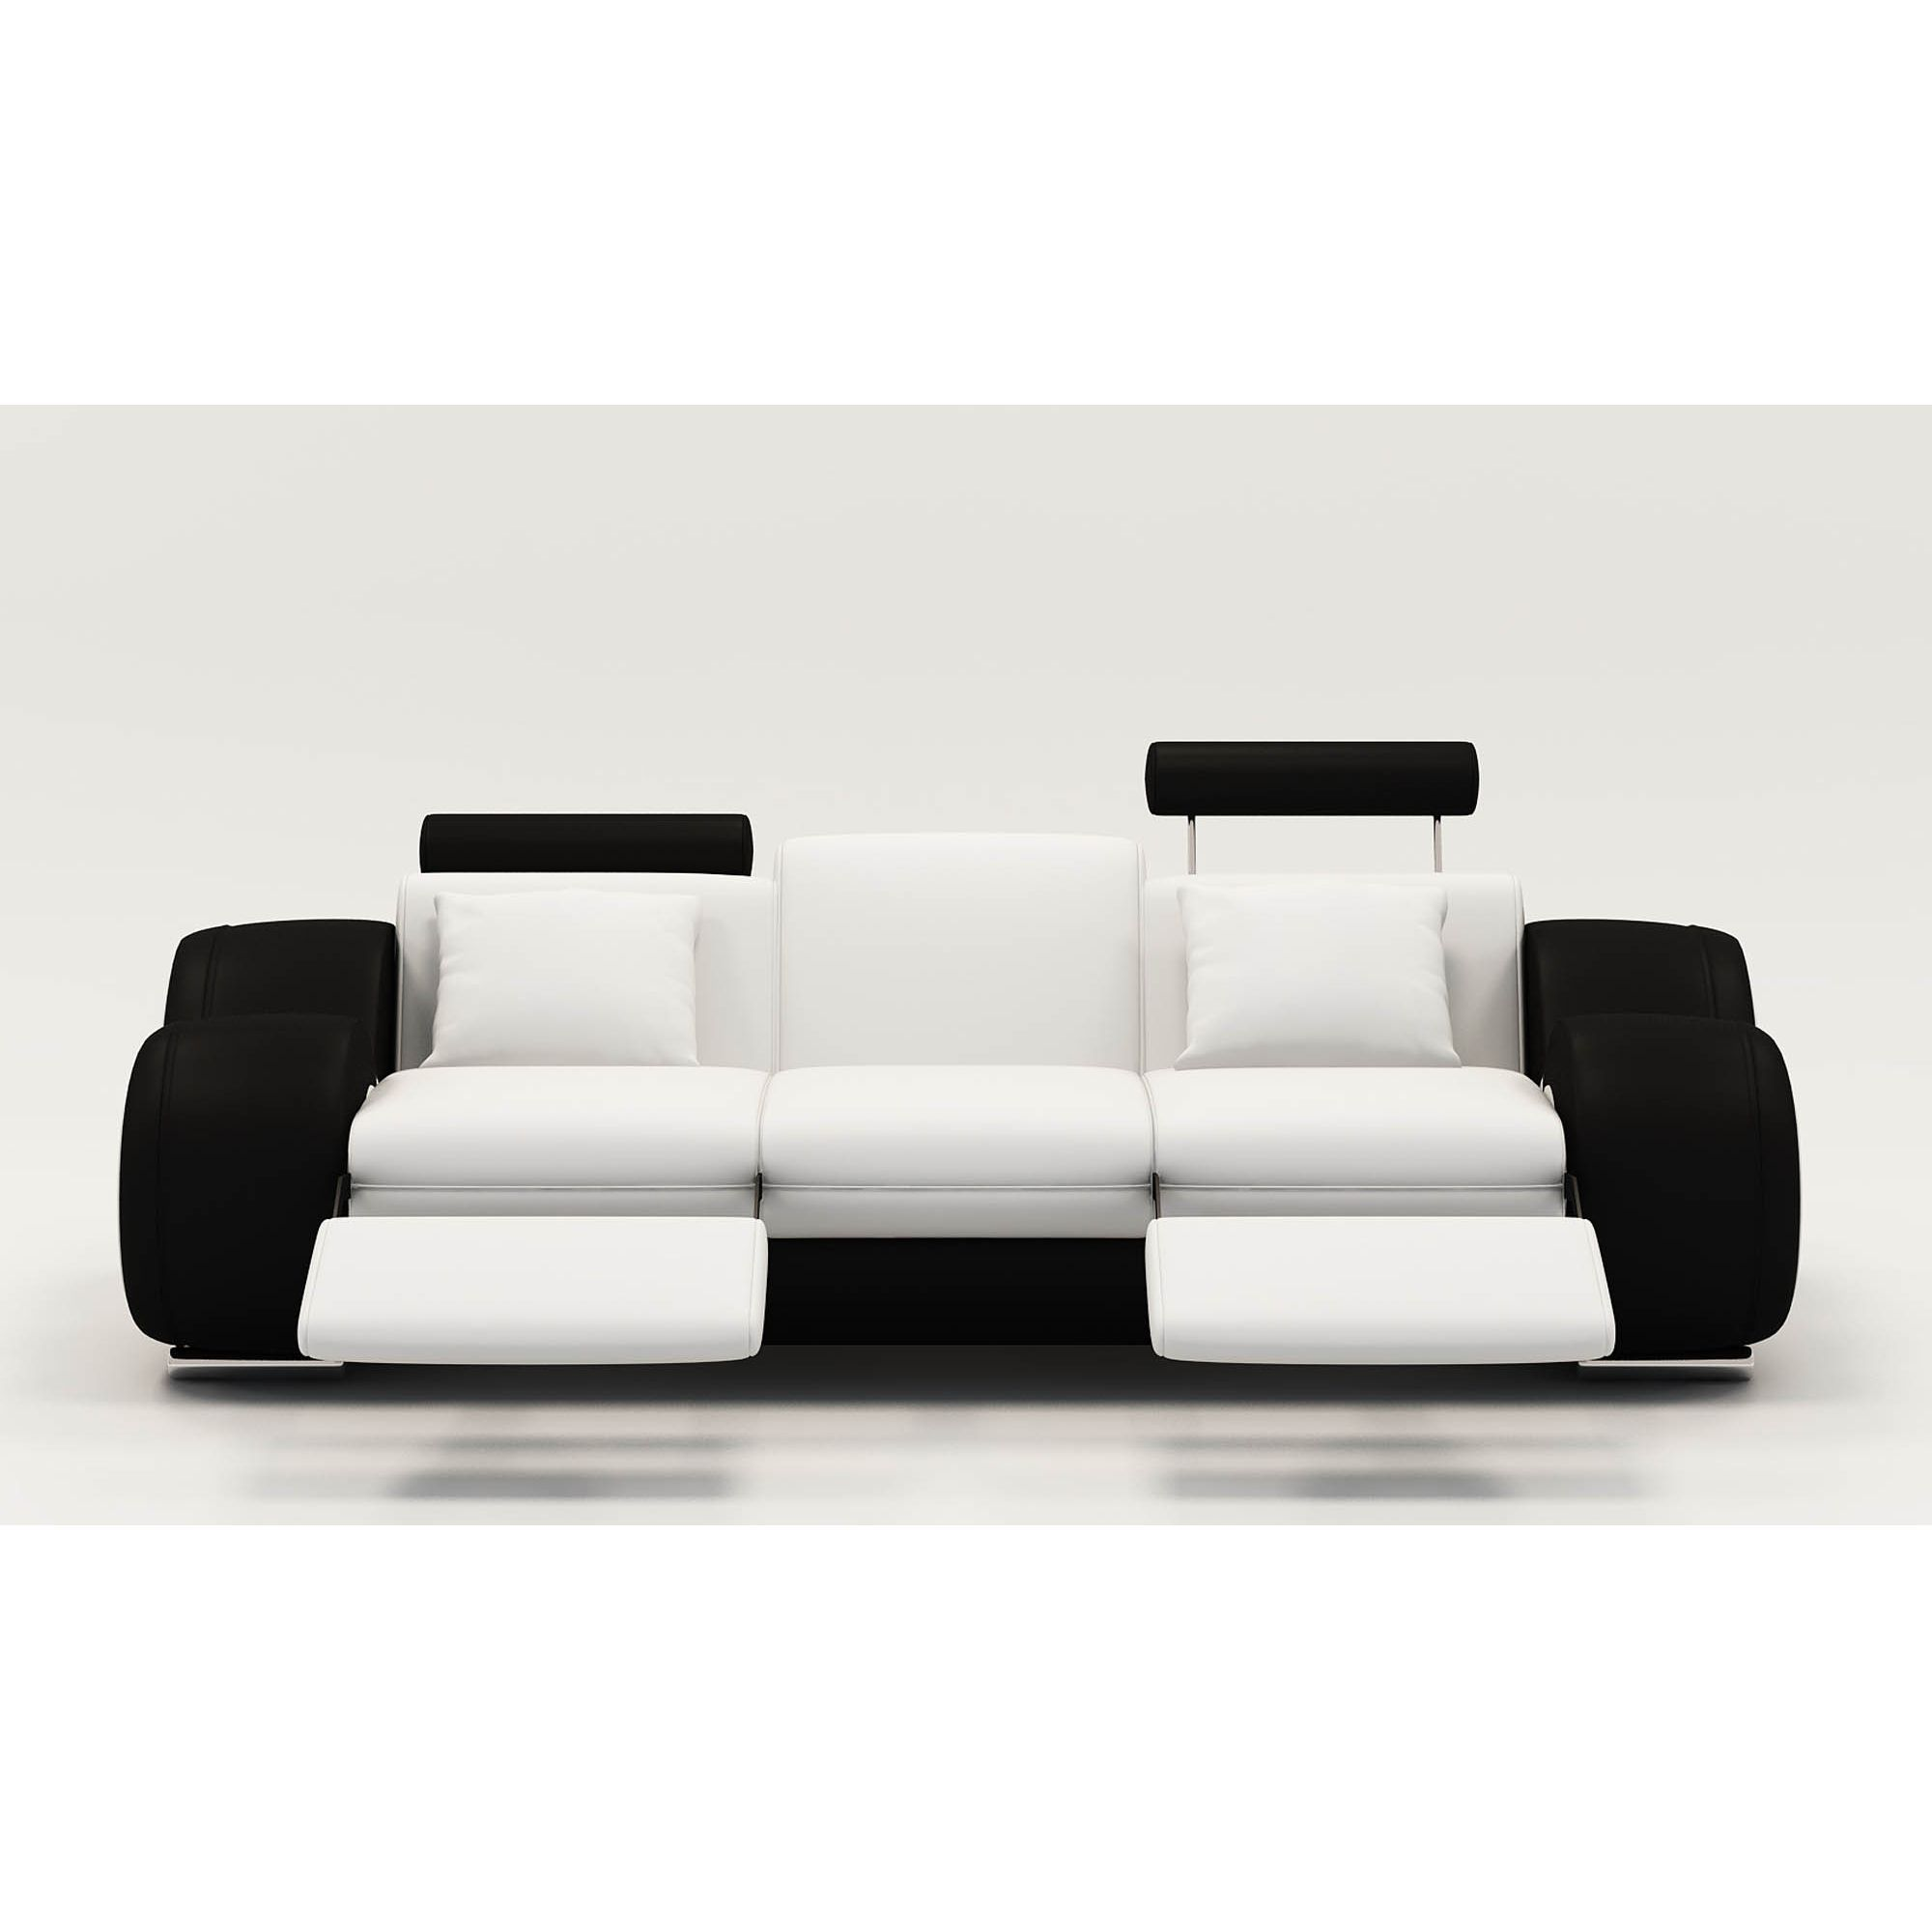 Deco in paris ensemble canape relax design 3 2 1 places blanc et noir oslo - Canape relax 2 places ...